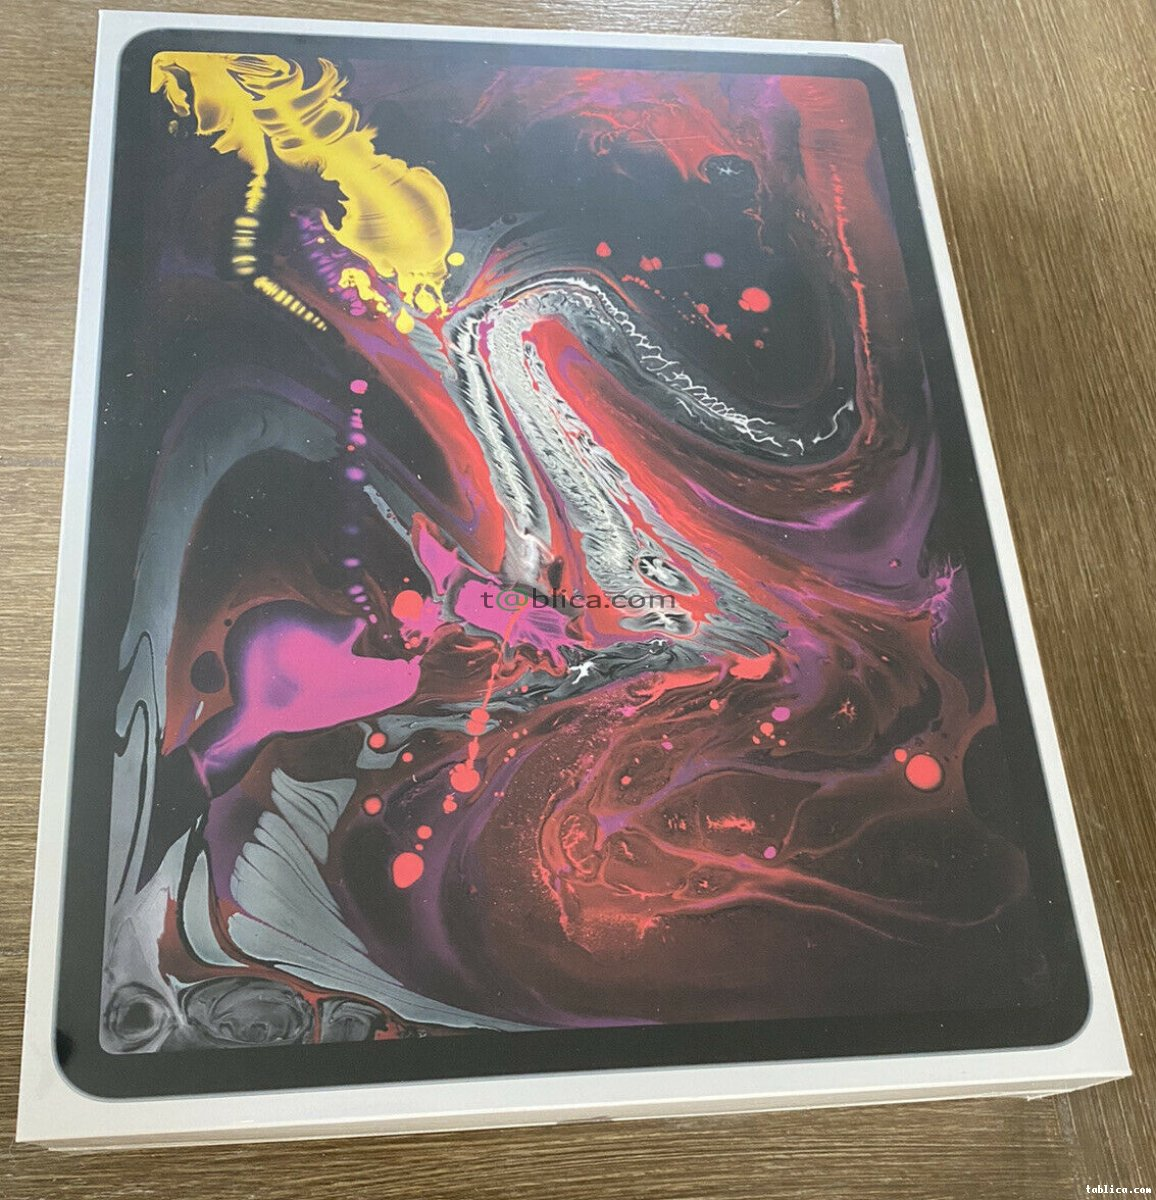 NEW SEALED IN BOX Apple iPad Pro 3rd Gen 64GB, Wi-Fi